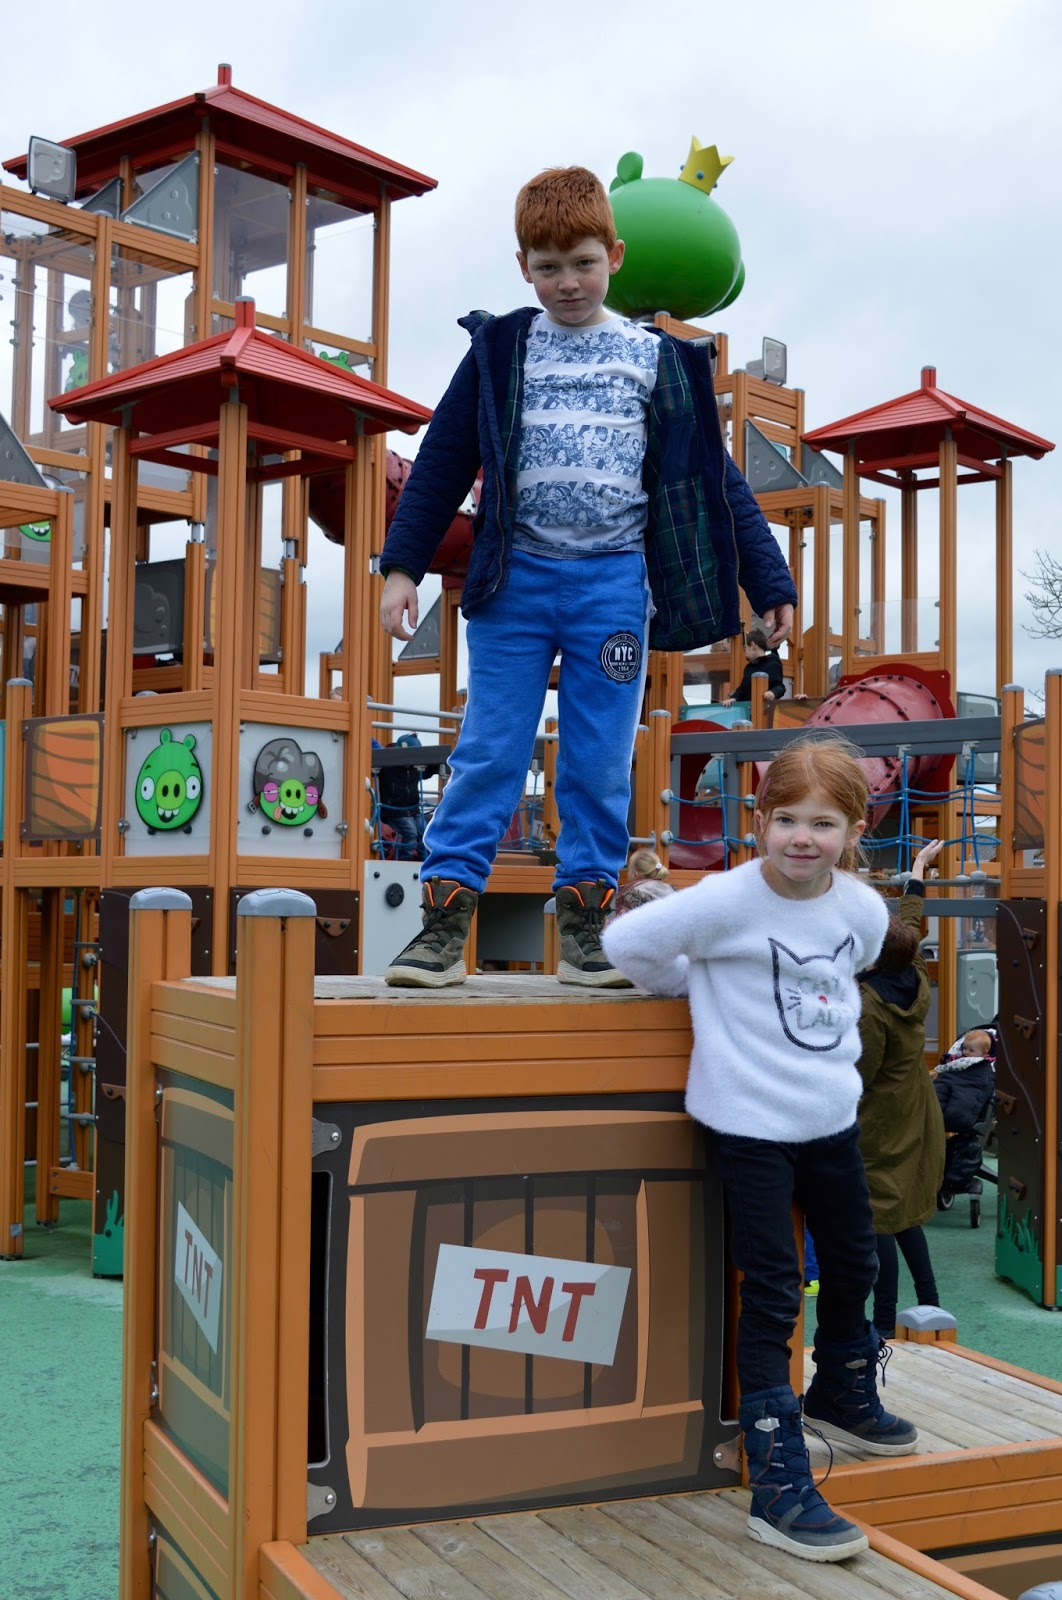 Visiting Angry Birds Activity Park at Lightwater Valley, North Yorkshire - TNT blocks